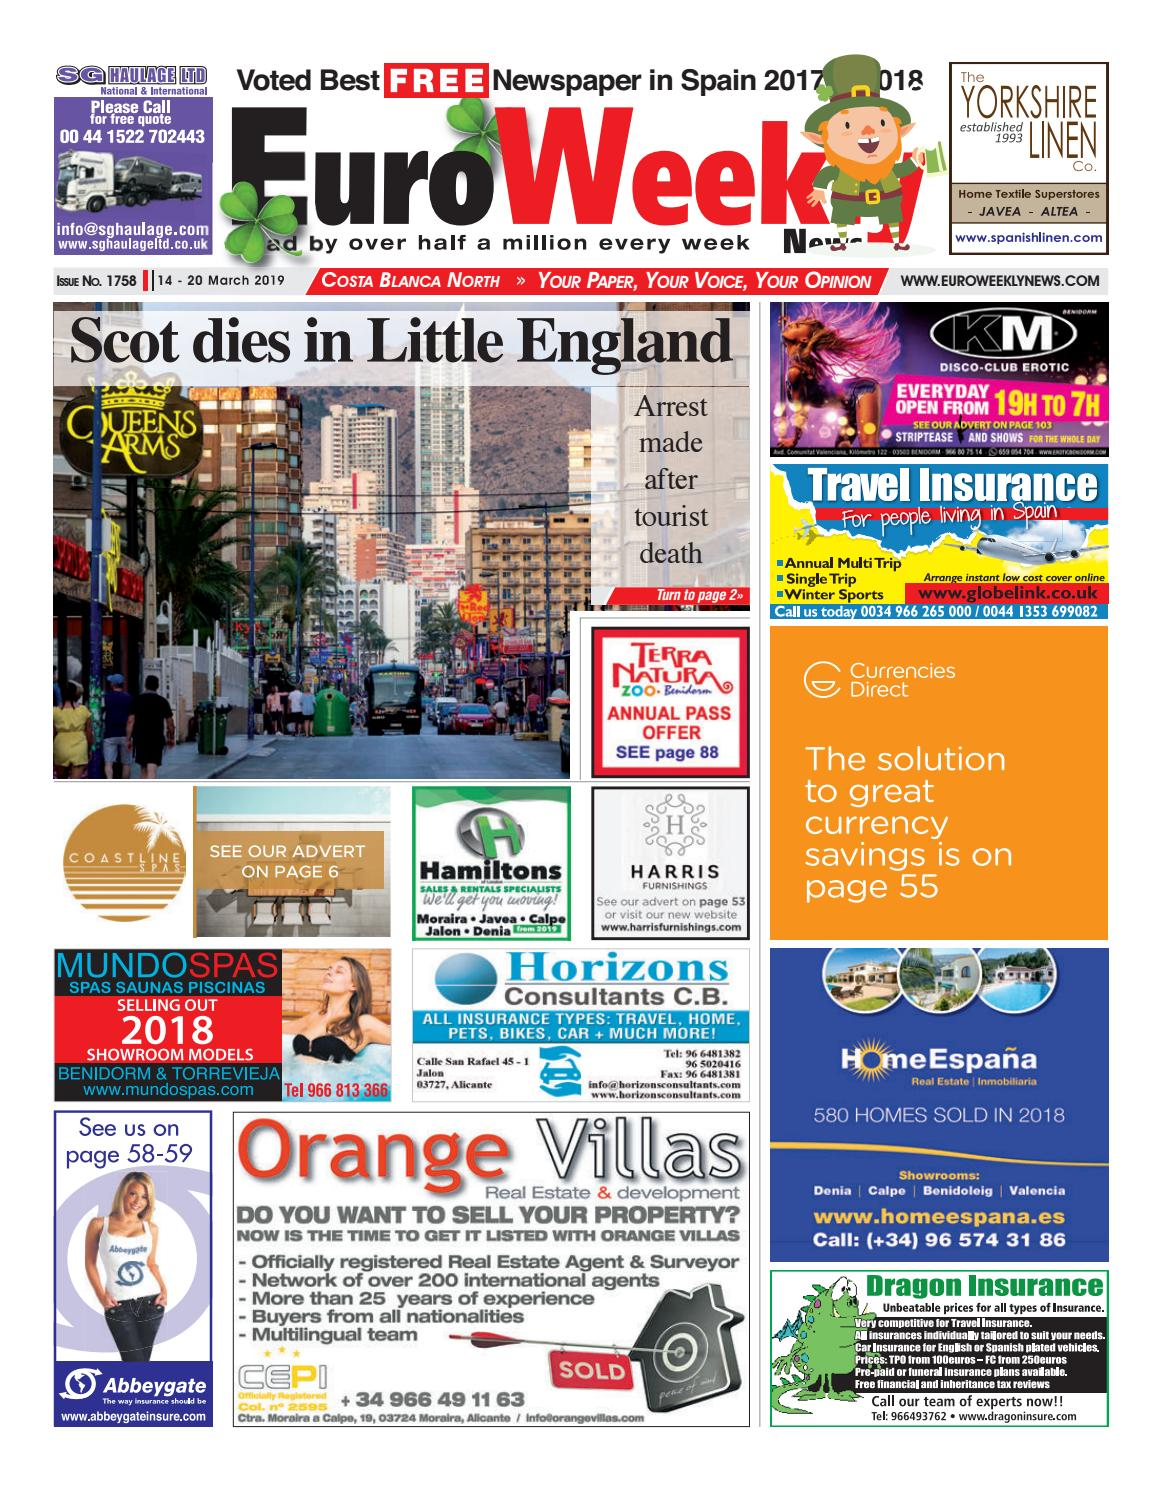 5a671e60b0 Euro Weekly News - Costa Blanca North 14 - 20 March 2019 Issue 1758 by Euro  Weekly News Media S.A. - issuu